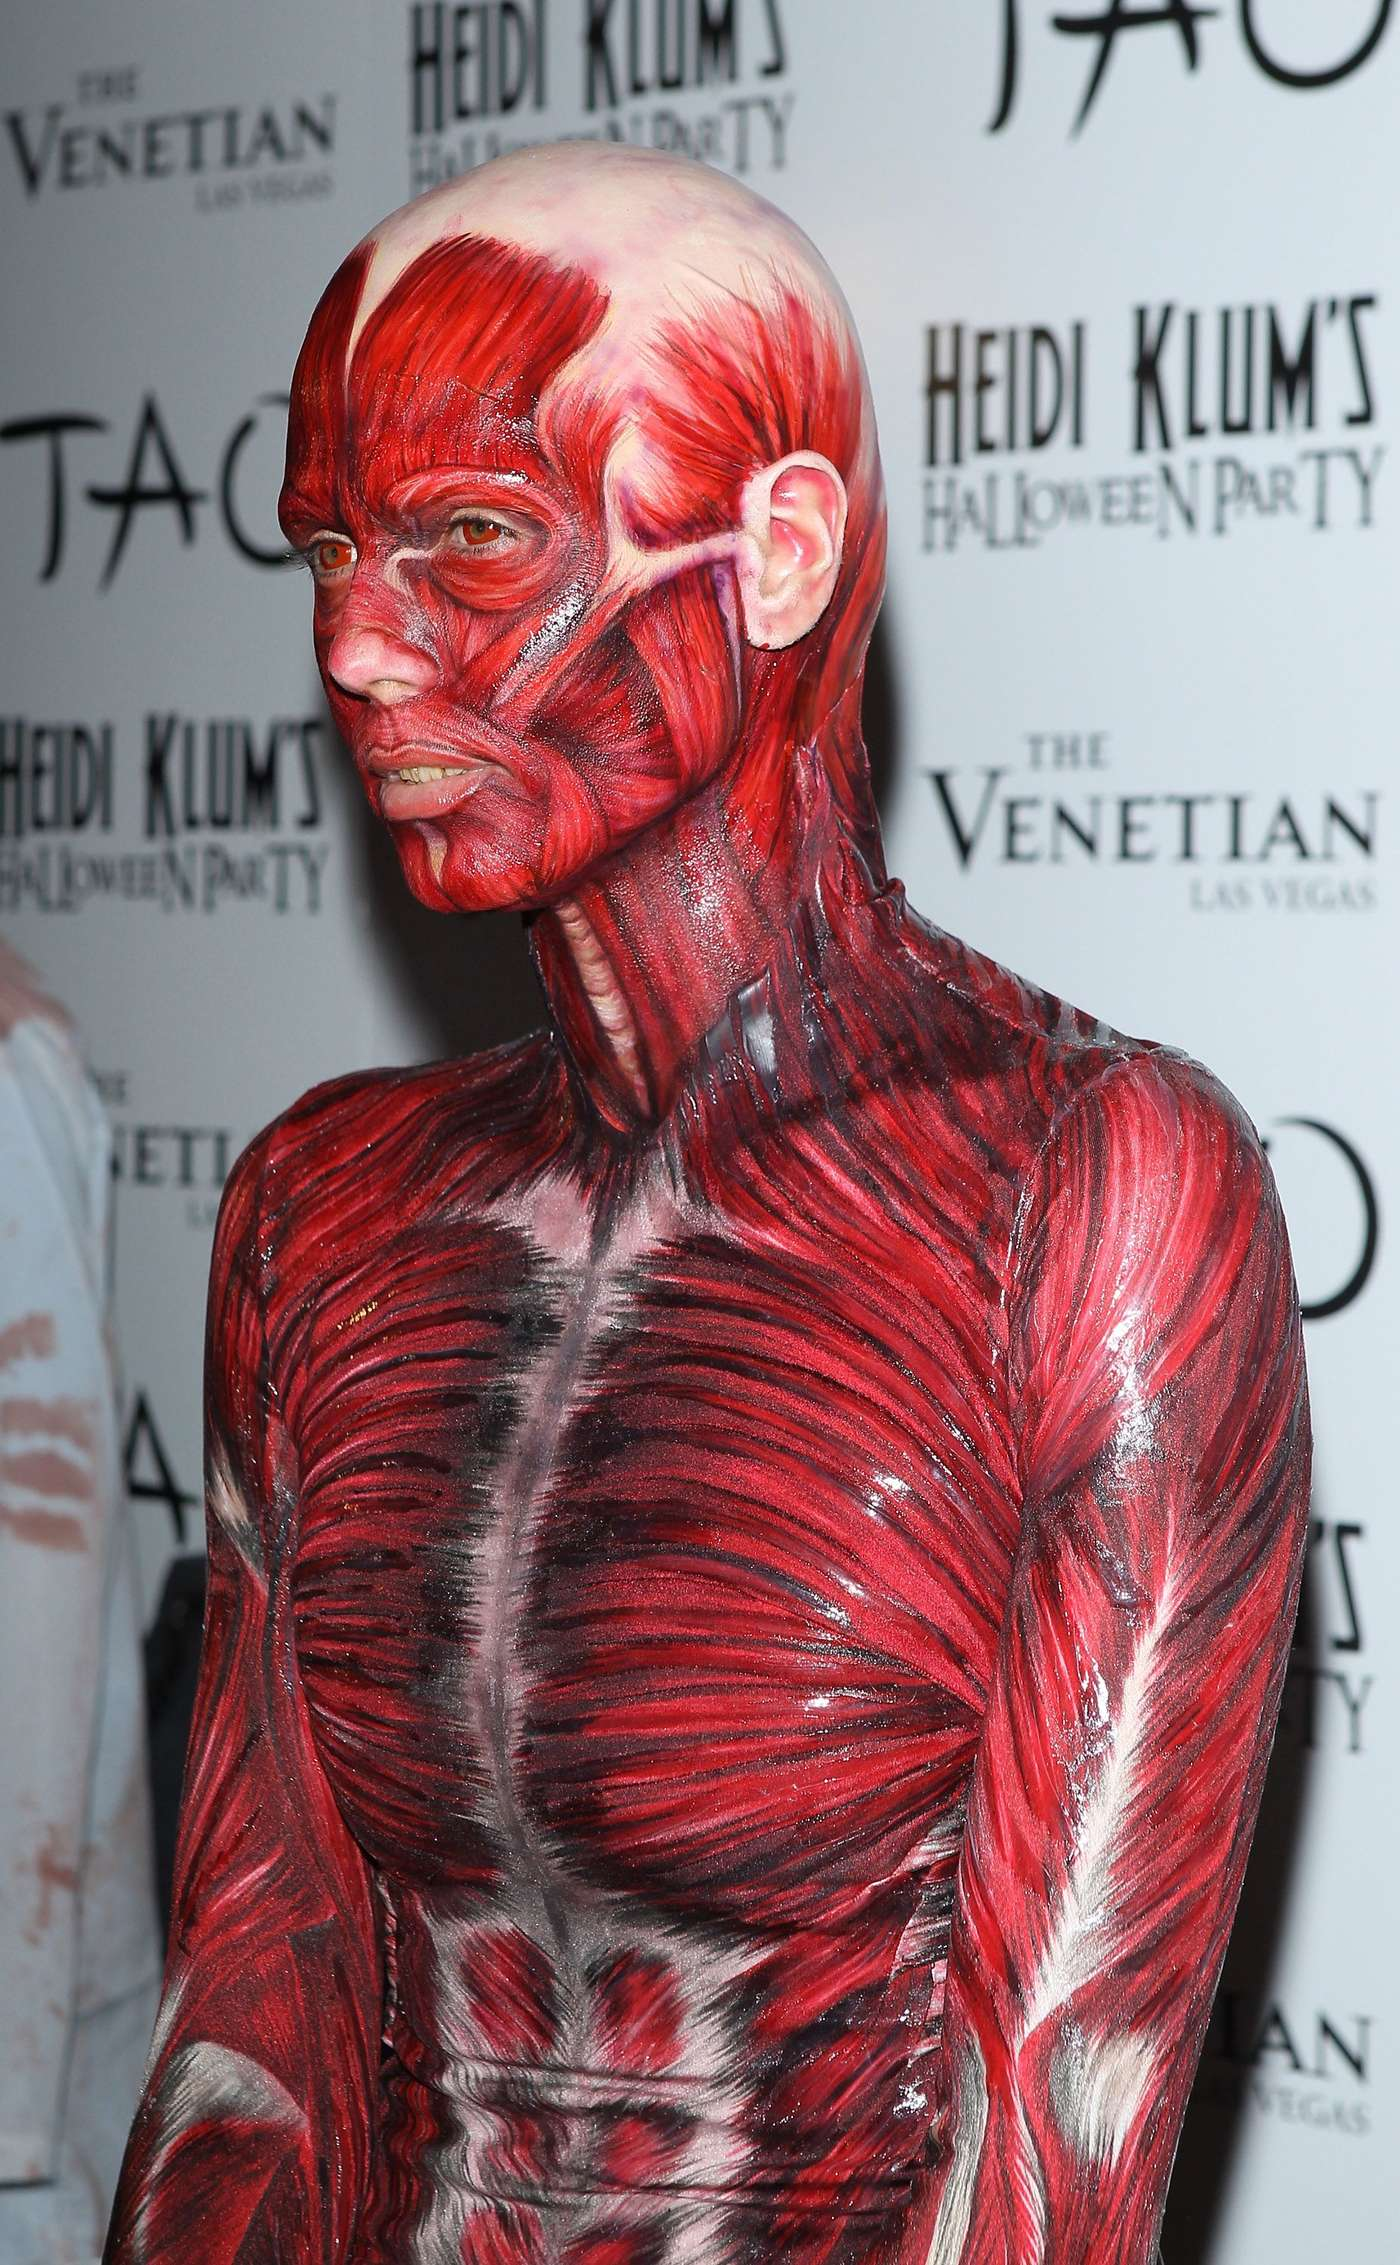 heidi klum muscles and veins costume halloween party in las vegas 05 full size - Halloween Muscle